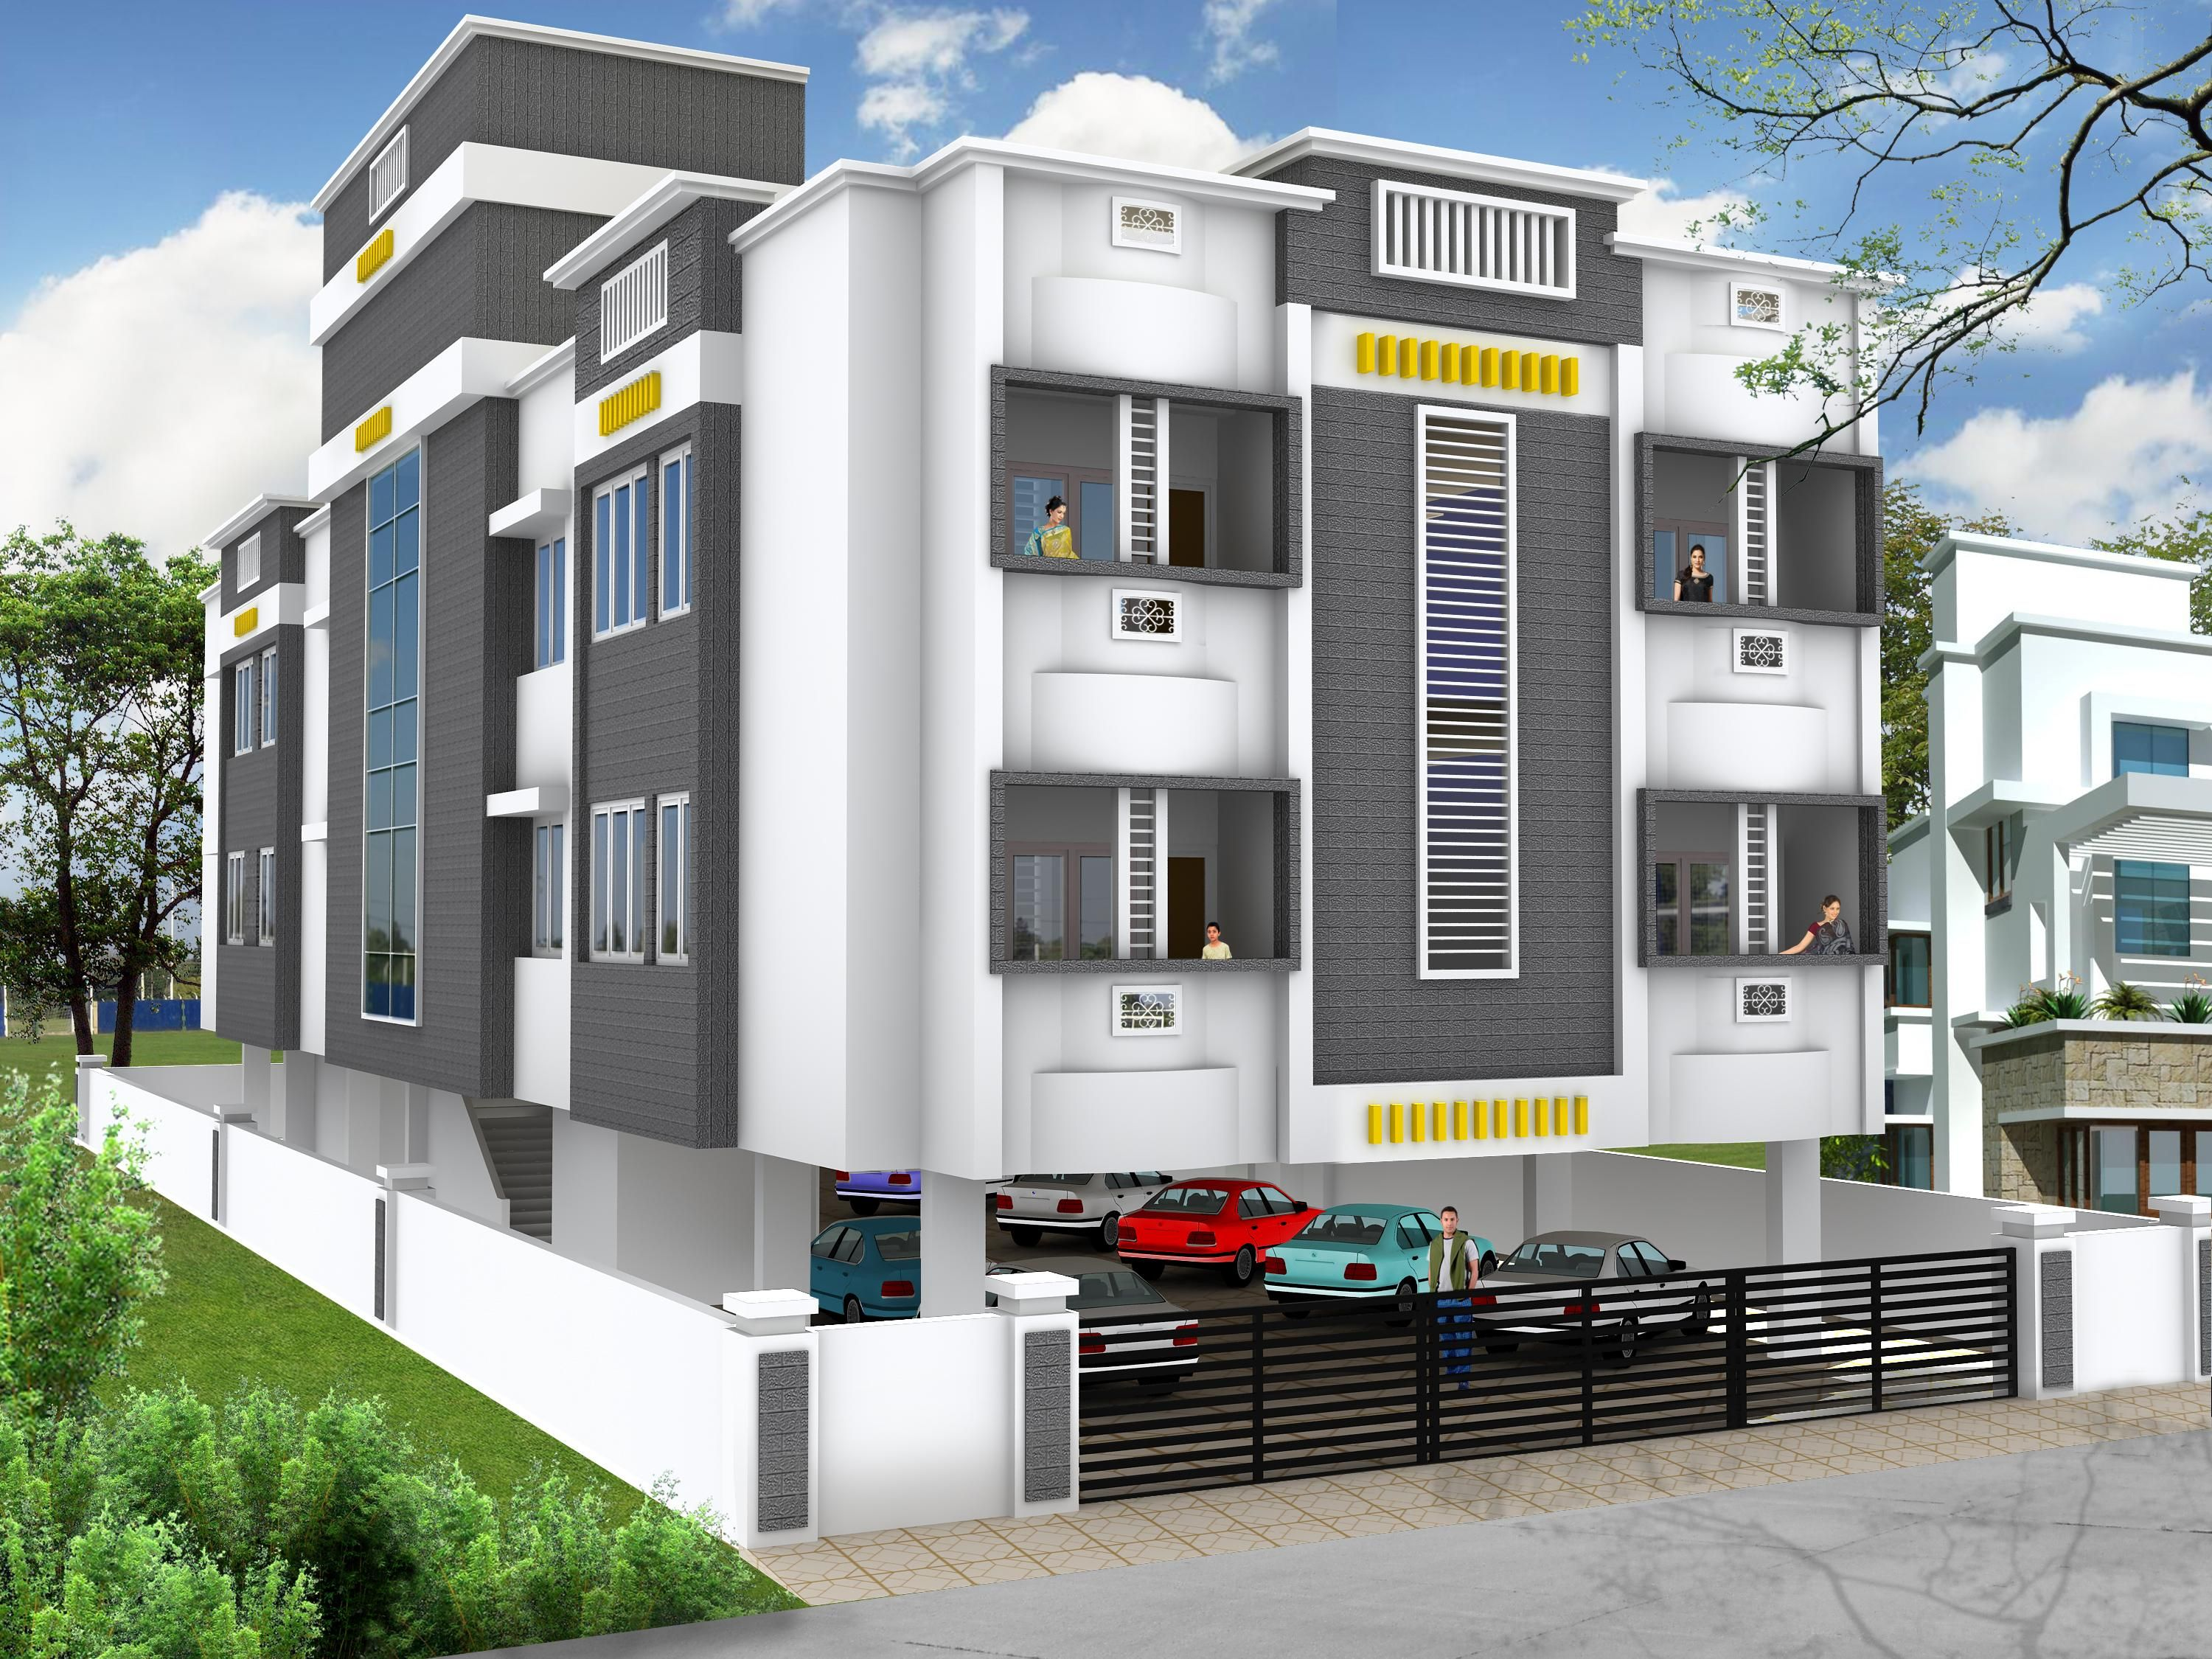 Residential Front Elevation Images : Elevations of residential buildings in indian photo